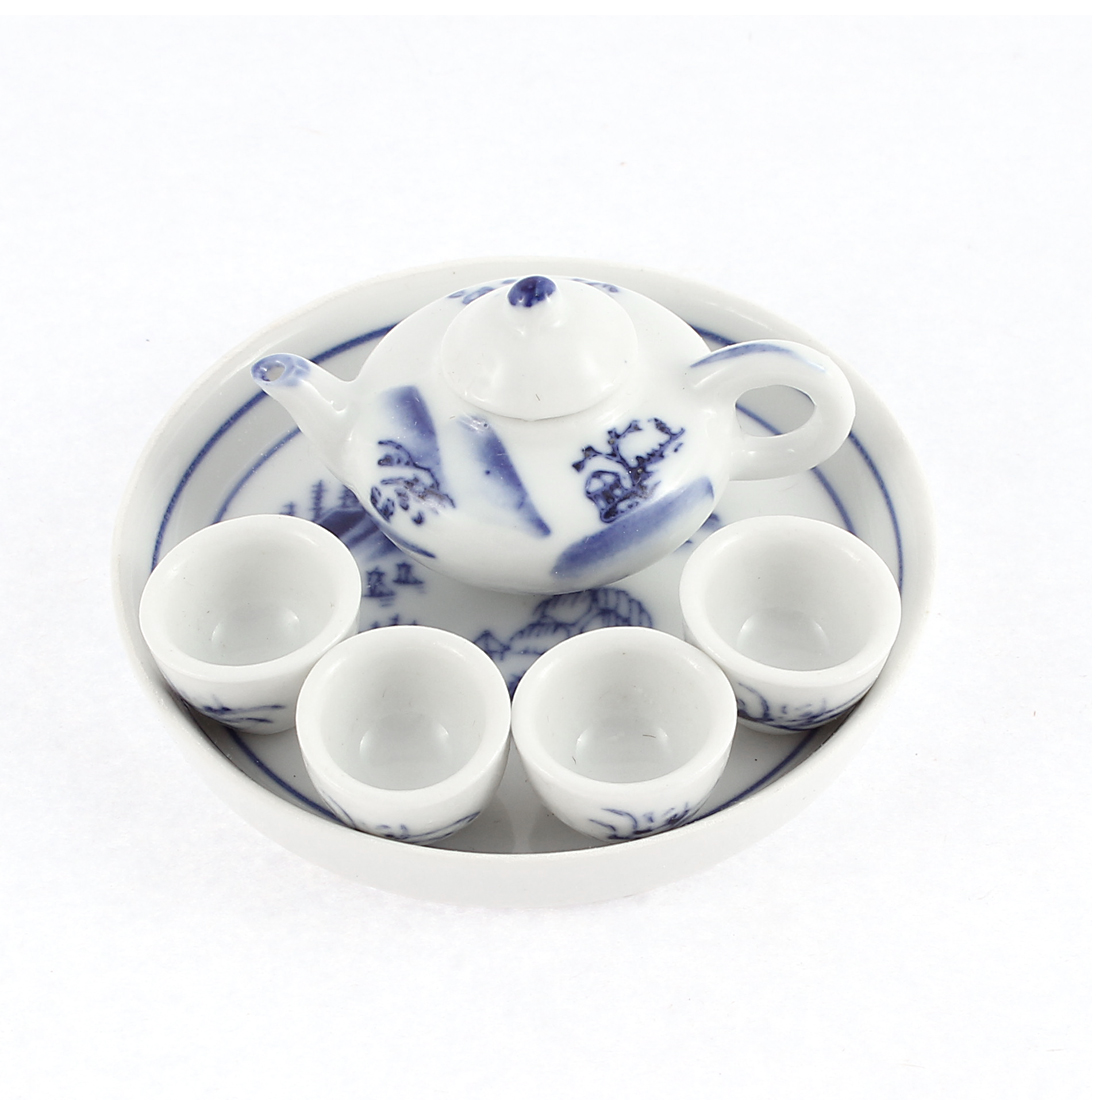 6 in 1 Tea Cup Set Dining Dish Plate Miniature Furniture for Birthday Gift